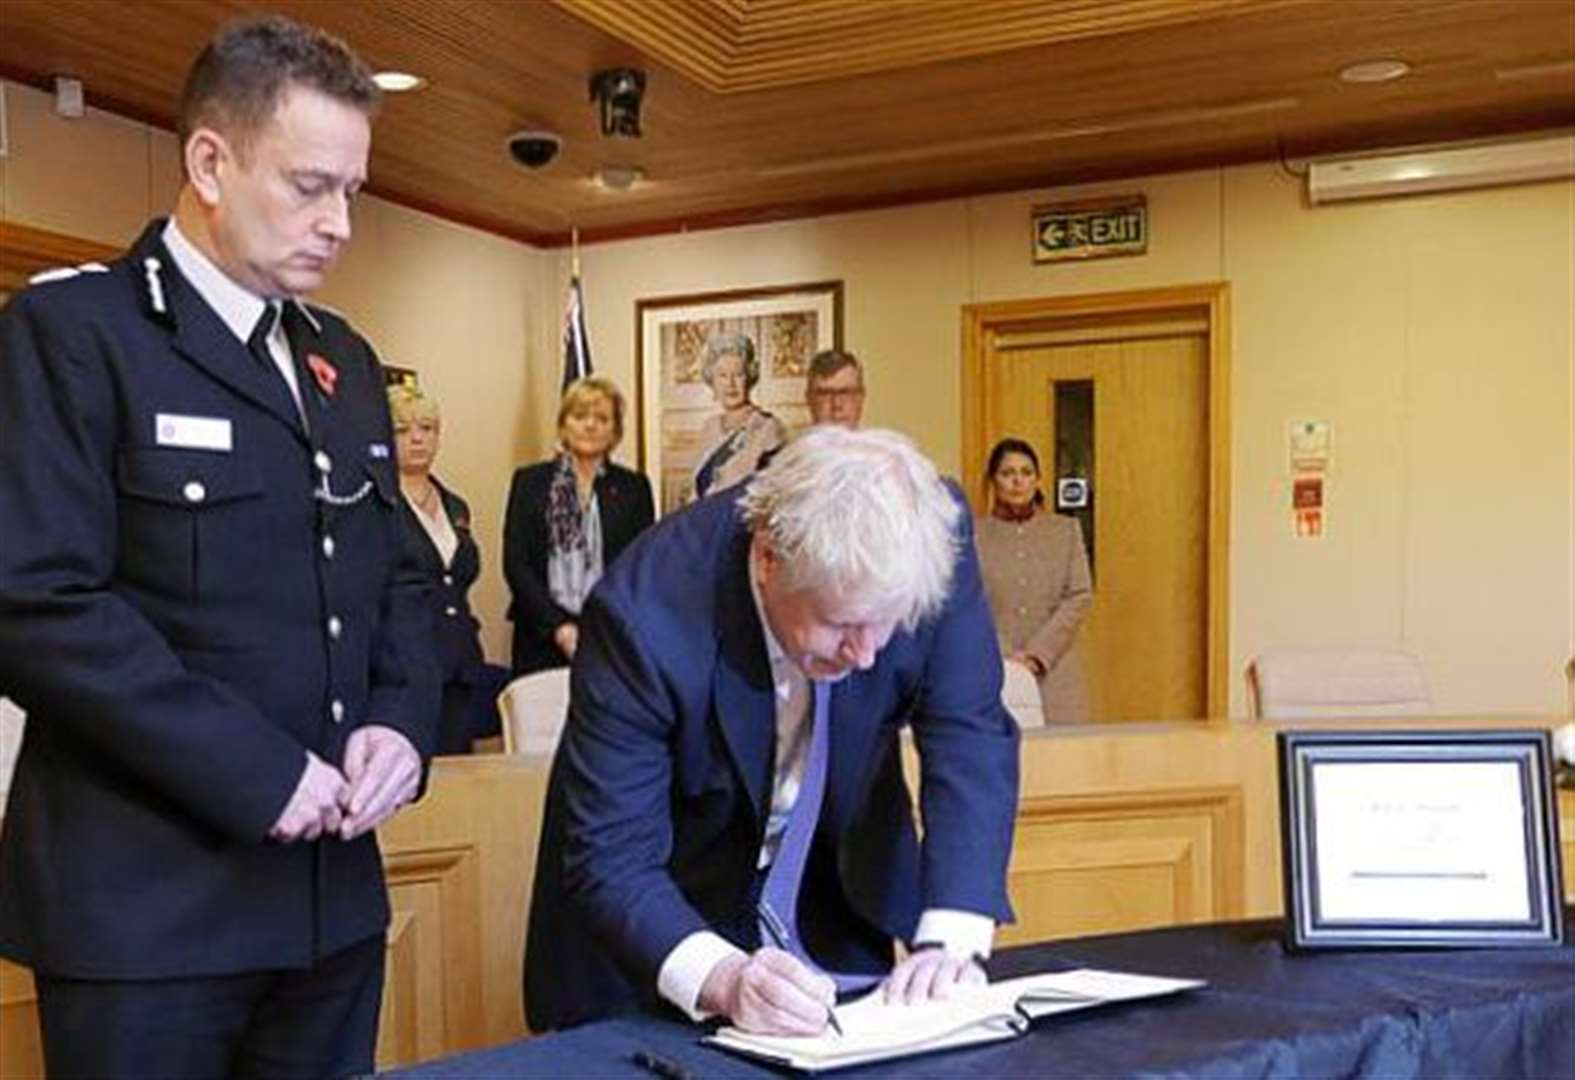 Boris Johnson signs book of condolence for 39 lorry trailer victims in Essex